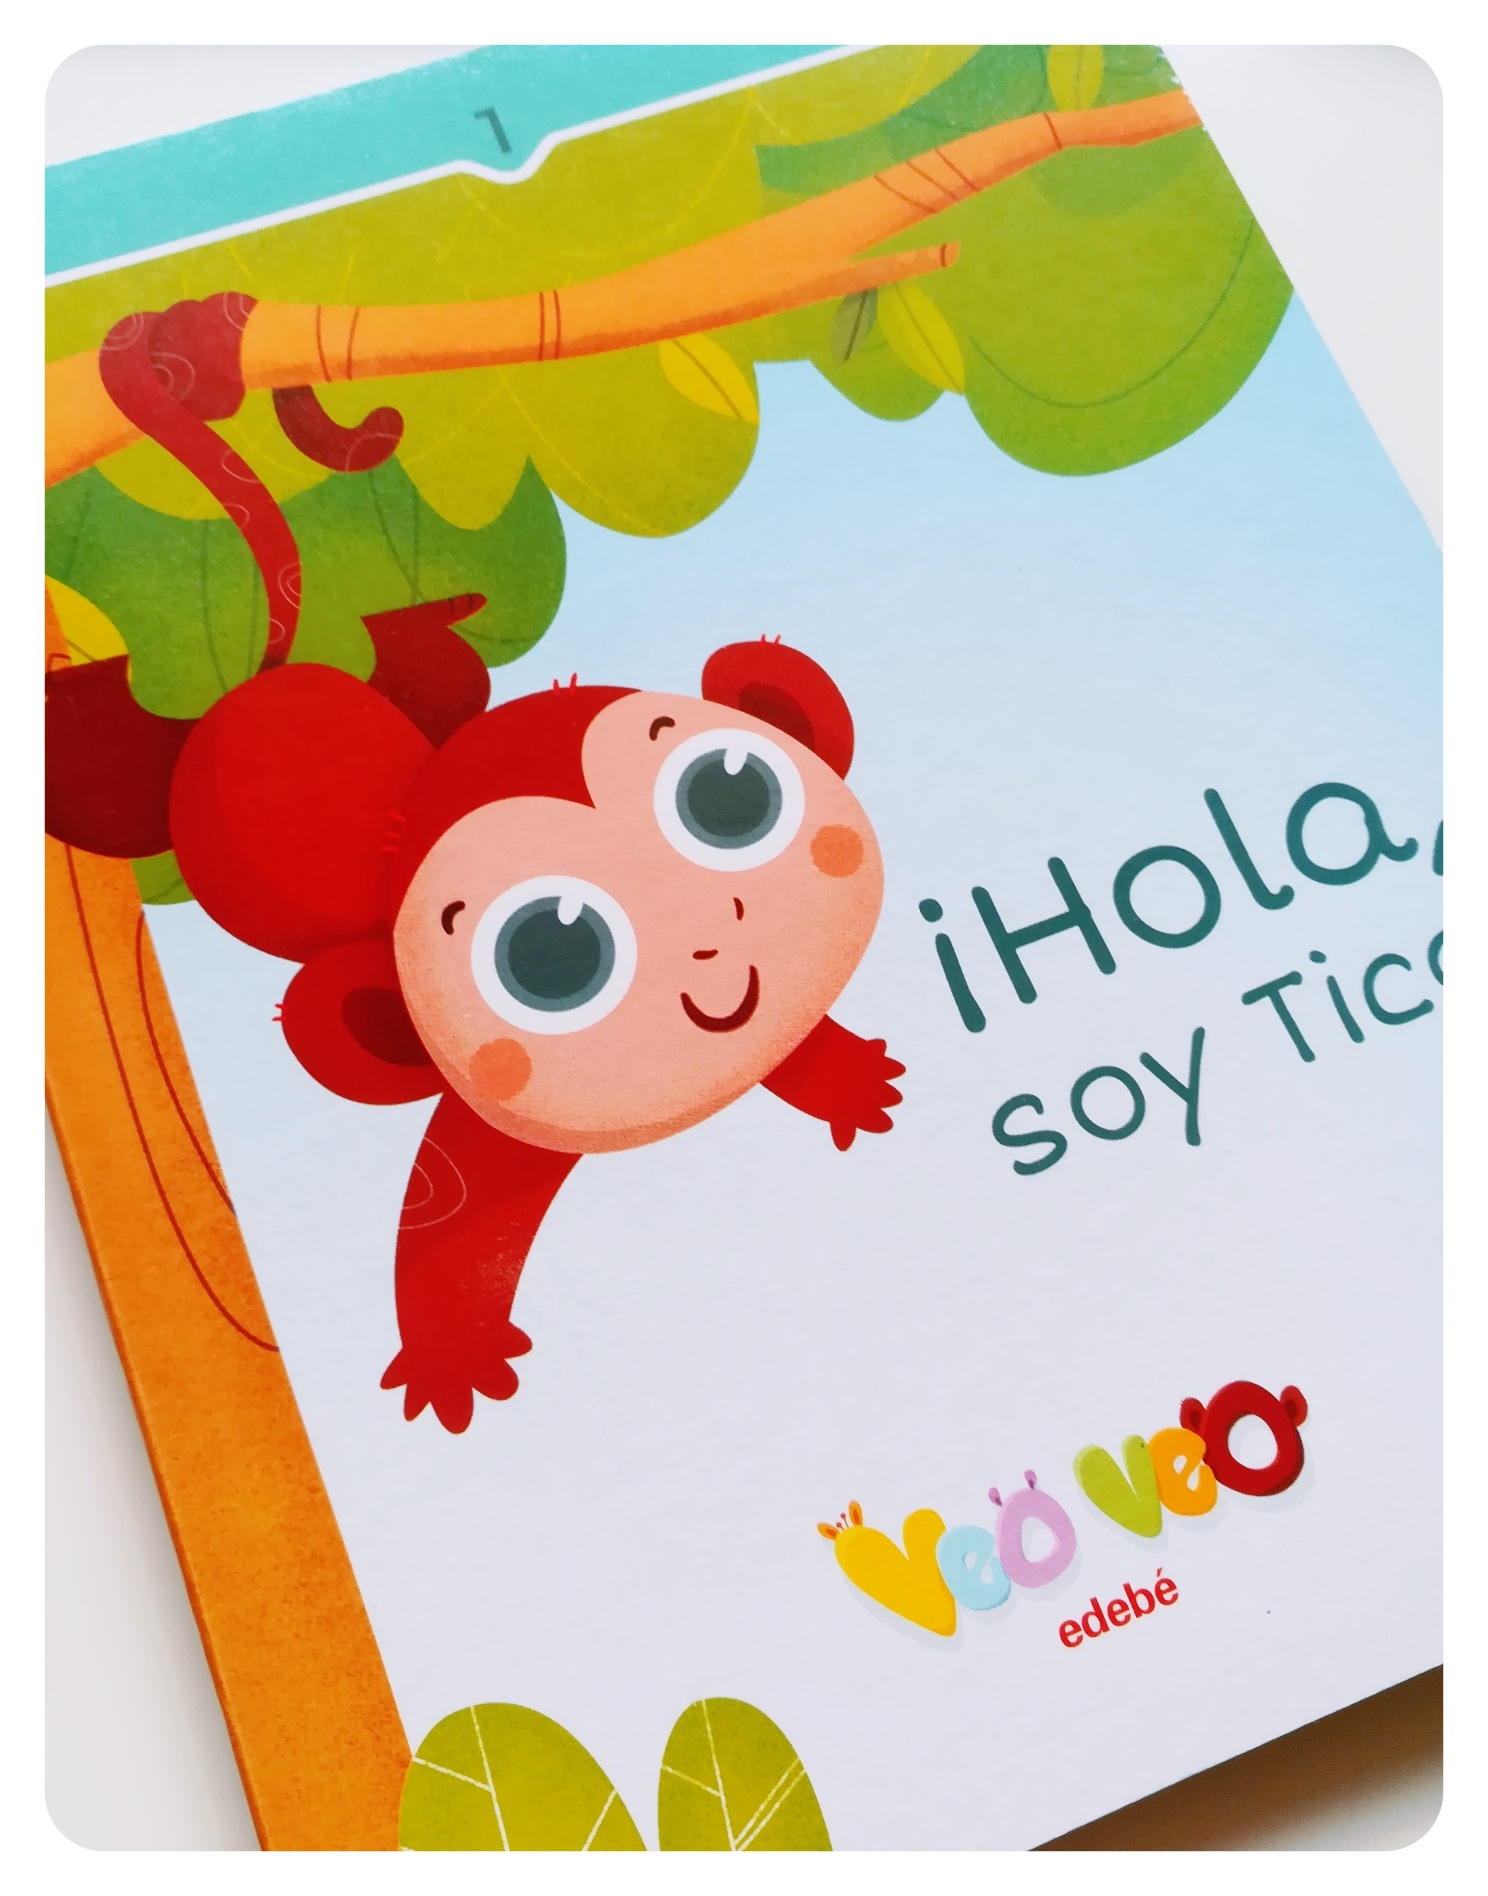 proyecto_veo_veo_editorial_edebe_tico_children_illustration_book_portada